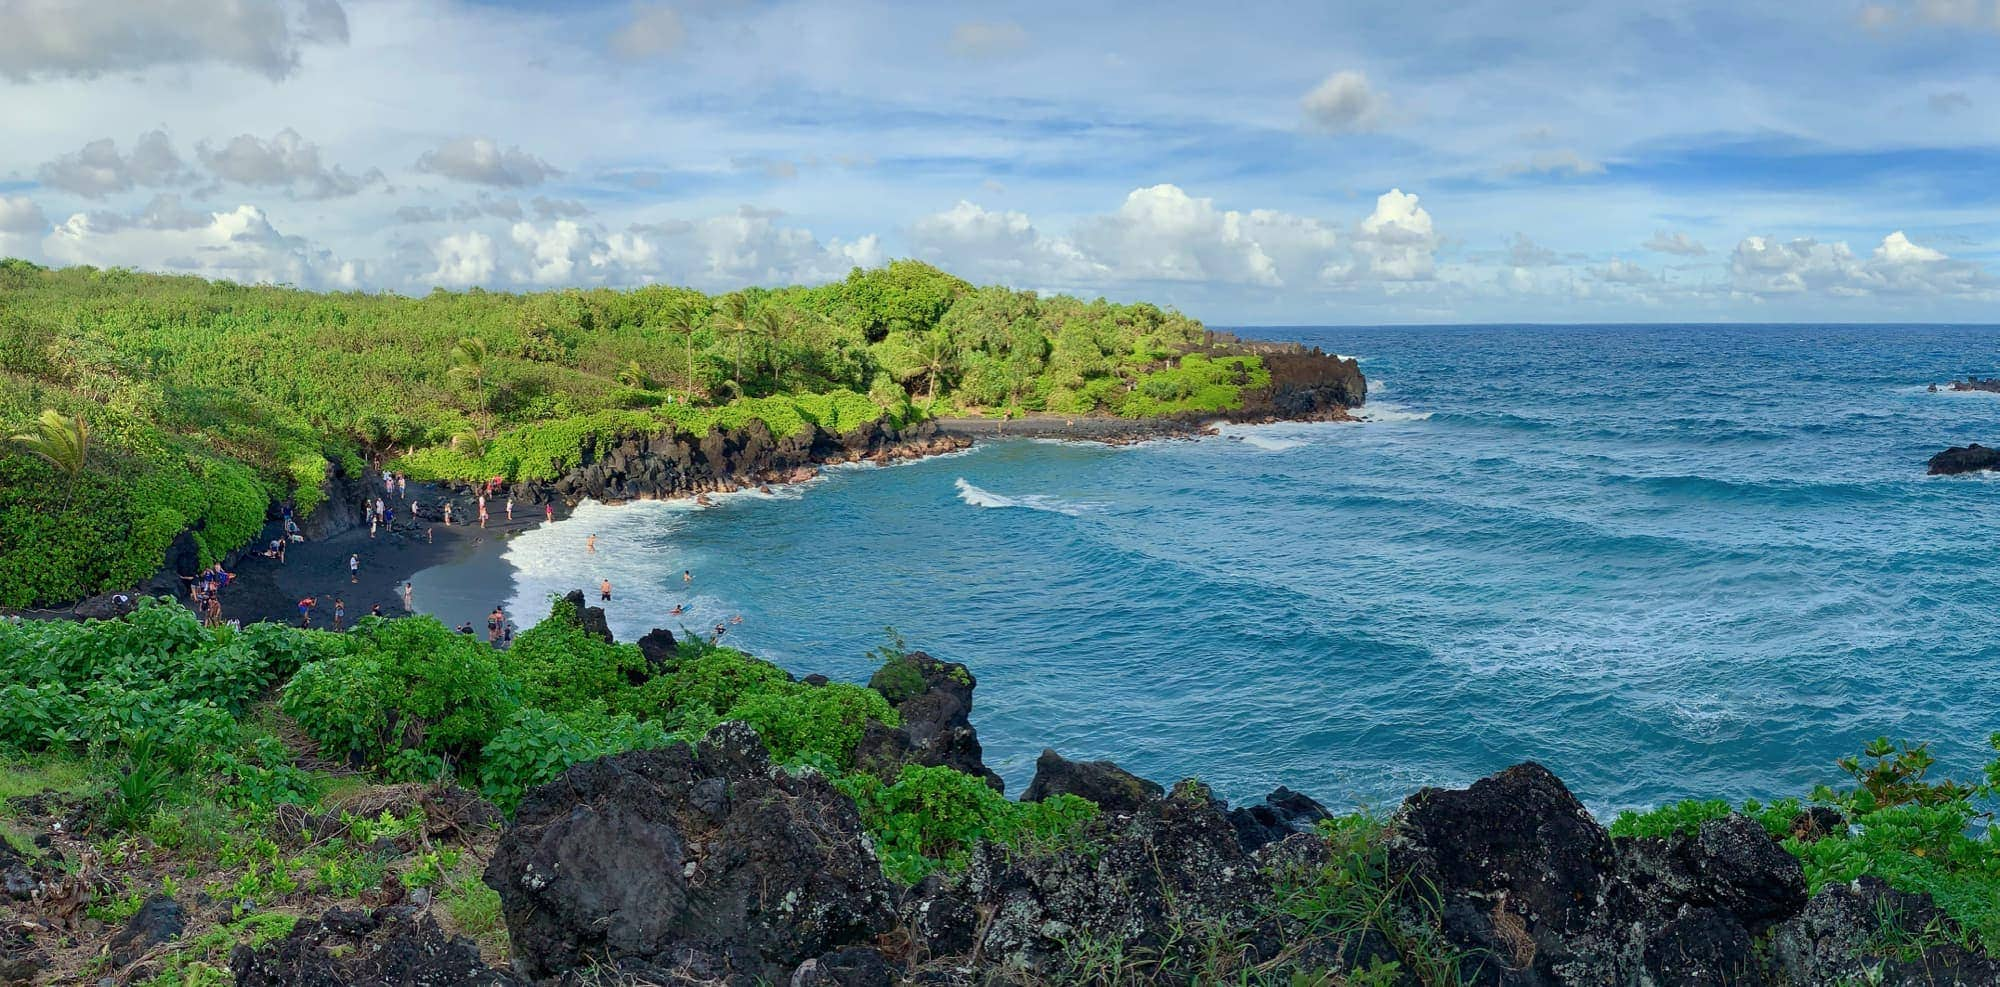 20 Favorite Sights and Destinations on Maui